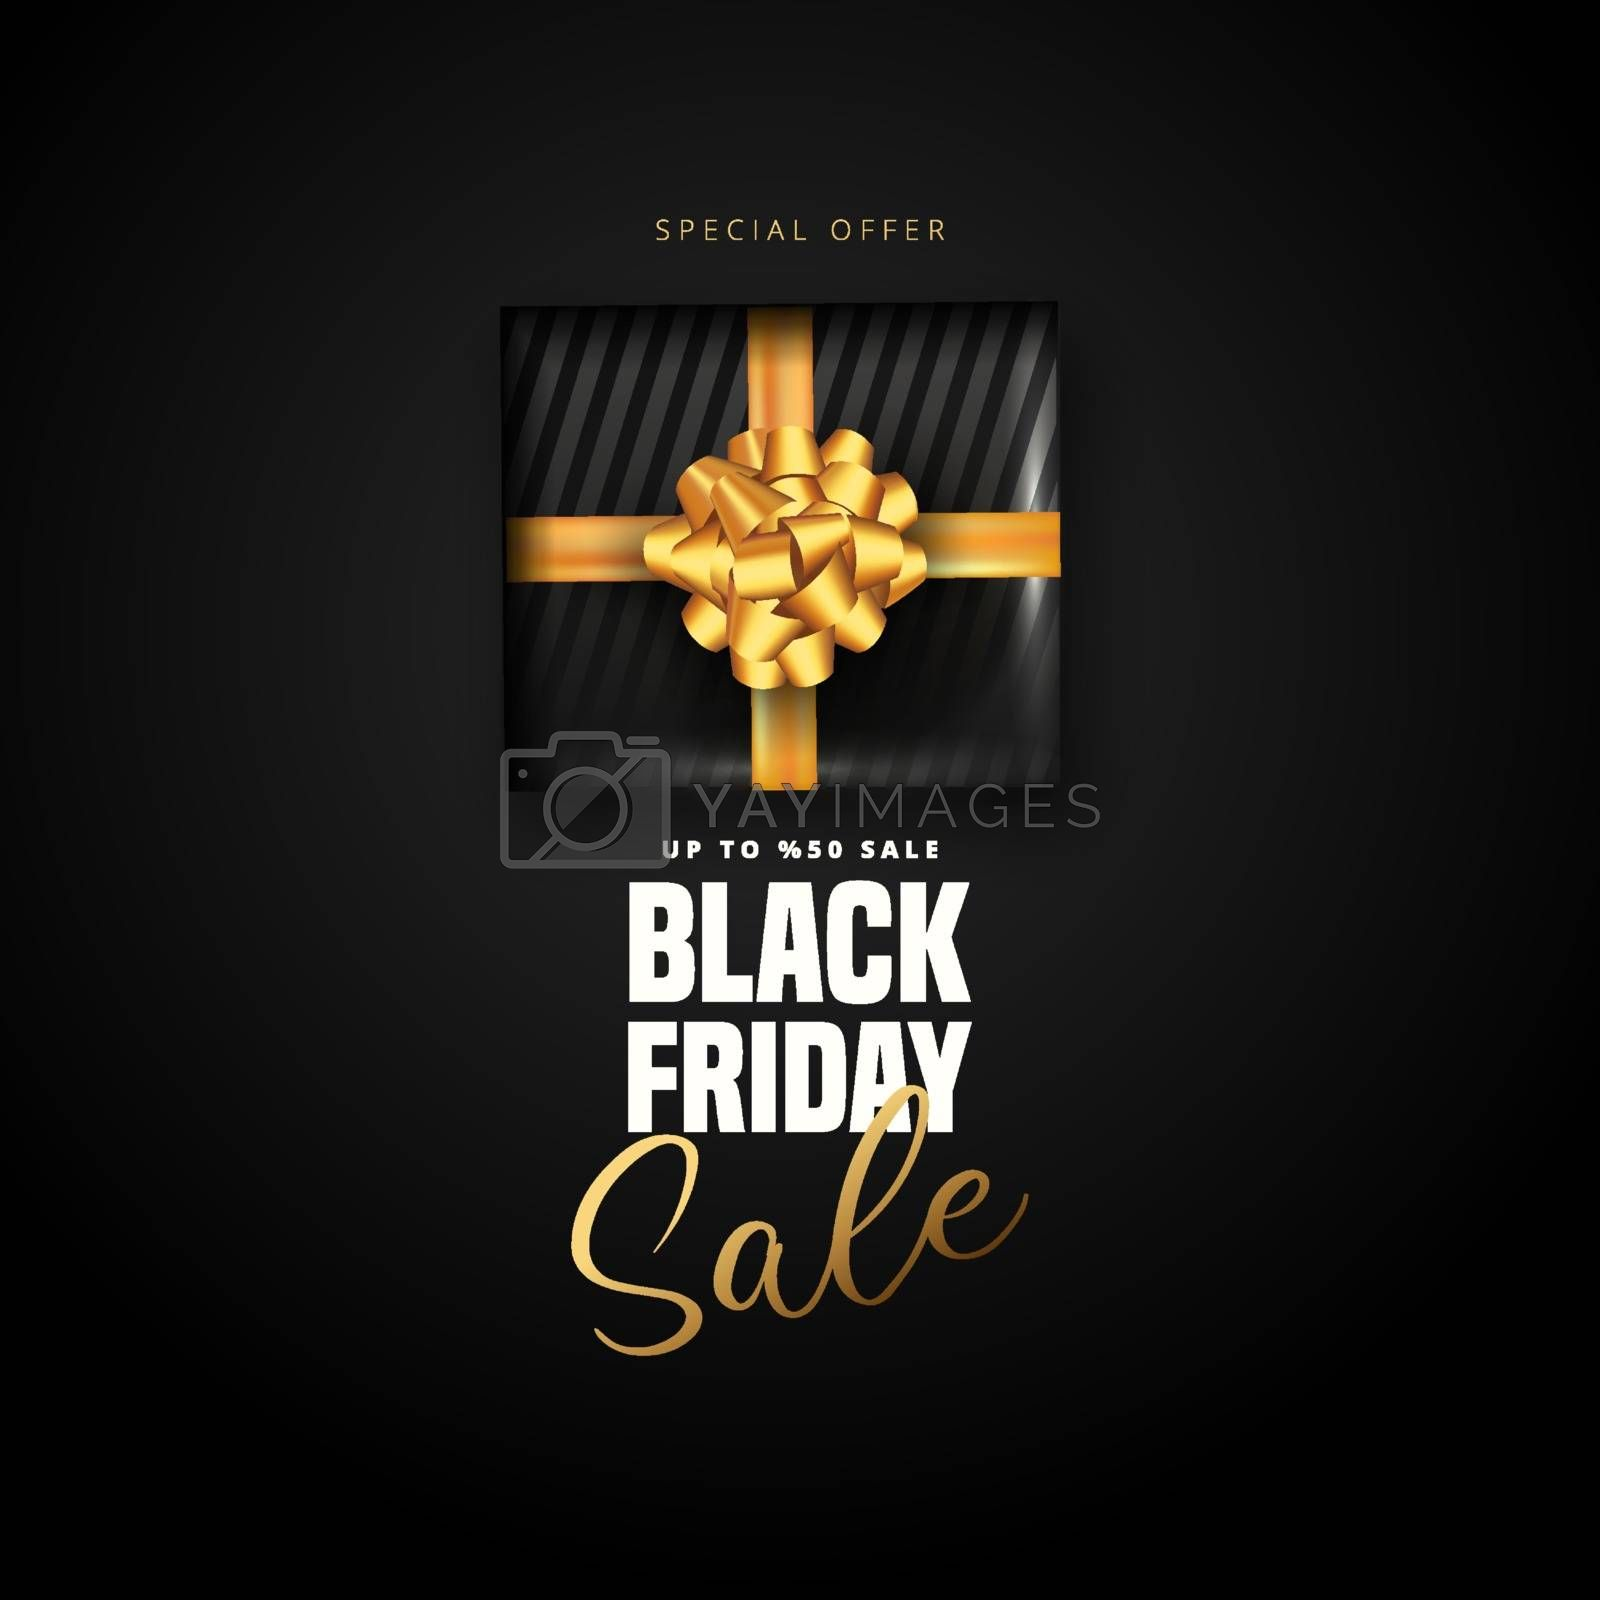 50% discount offer for Black friday sale lettering, Black gift box around on black background. Can be used as poster,banner or template design.